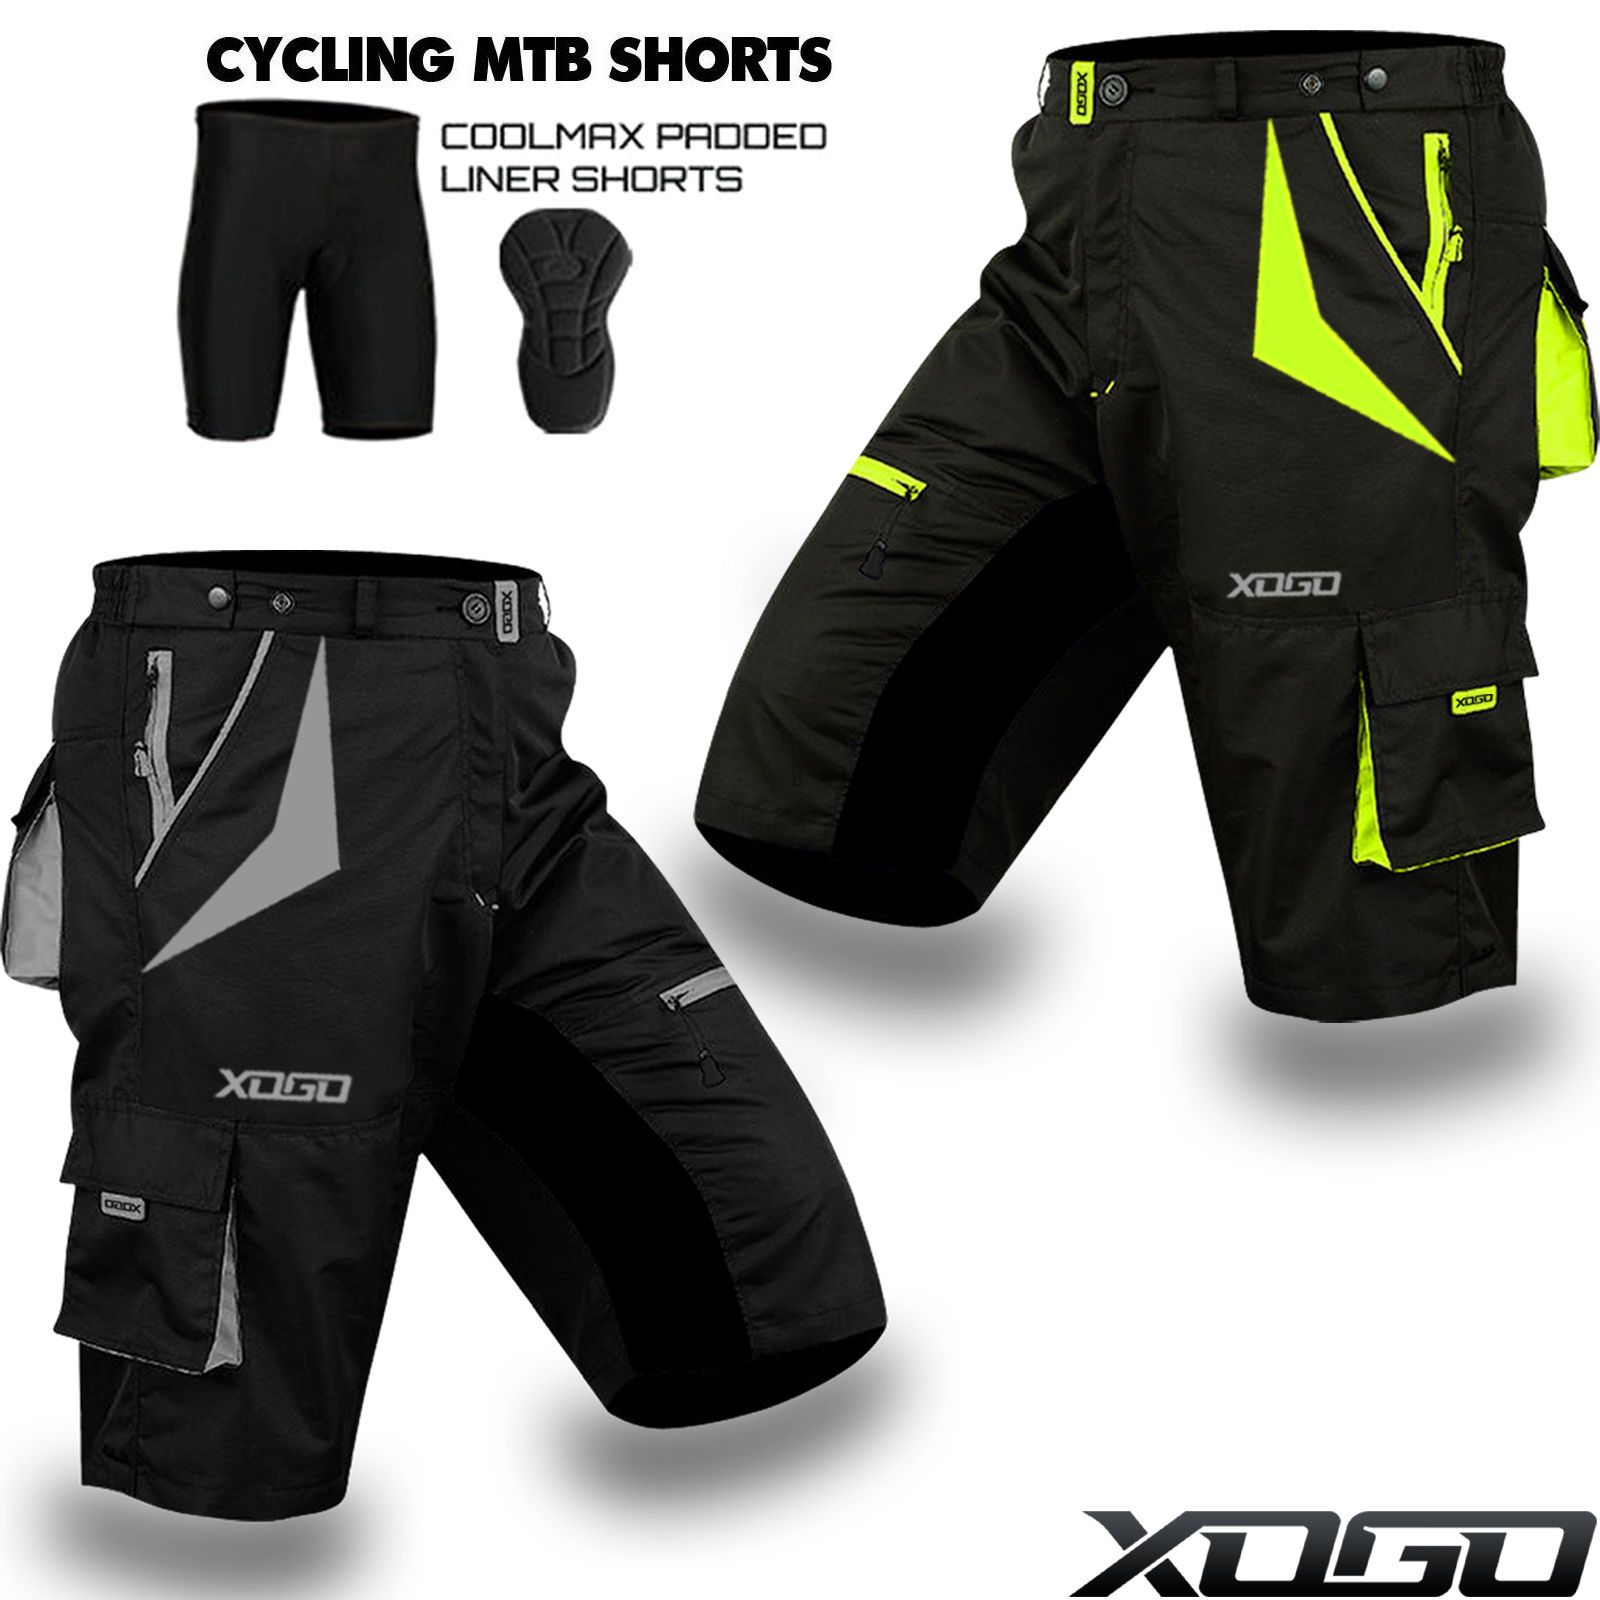 d25b229e8 Mtb Cycling Short Off Road Bicycle With Coolmax Padded Liner Shorts Sports